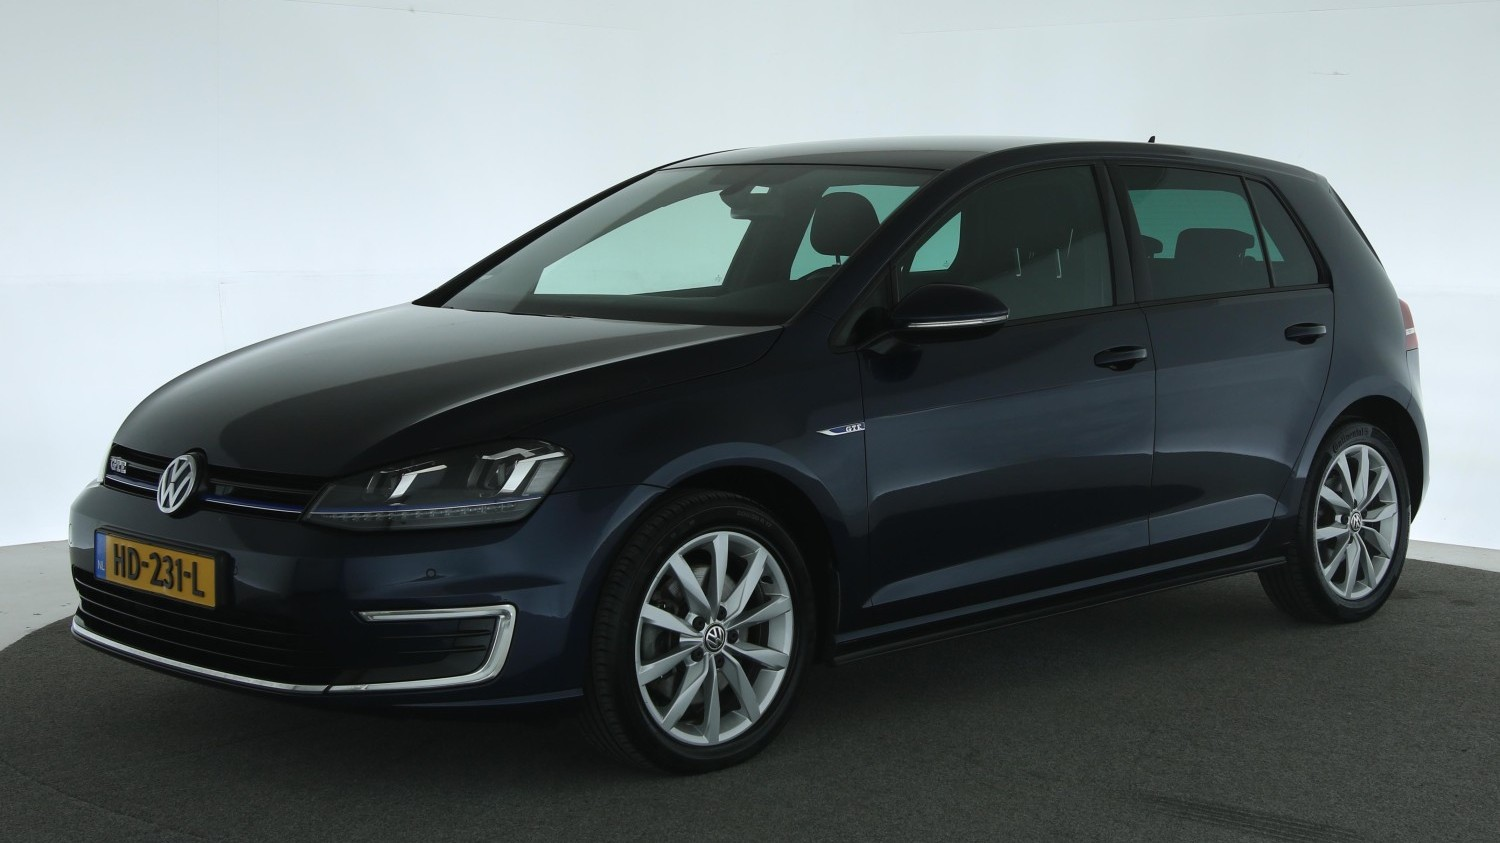 Volkswagen Golf Hatchback 2015 HD-231-L 1